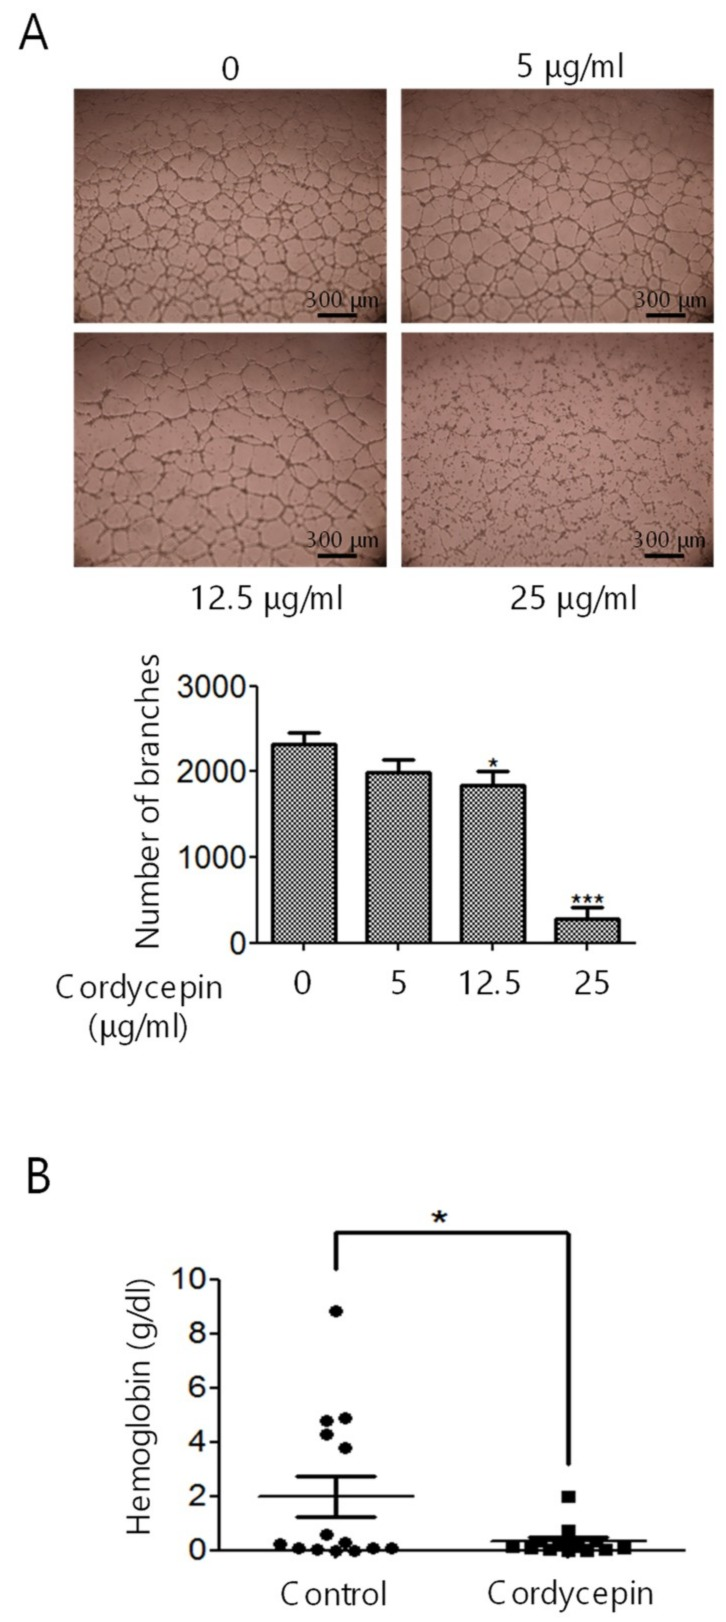 Suppression of tube formation and in vivo angiogenesis by cordycepin. ( A ) HUVECs were treated with cordycepin for 48 h and seeded onto Matrigel-coated plates with 0–25 μg/mL cordycepin in M200 medium for another 6 h. Tube formation was examined by counting the number of branches. ( B ) Matrigel plug assay was performed to assess in vivo angiogenesis formation in C57BL/6 mice. The mice were implanted with Matrigel plugs containing vascular endothelial growth factor (VEGF) and heparin with or without 25 μg/mL cordycepin for seven days. The Matrigel plugs were harvested, and in vivo angiogenesis was evaluated by measuring the concentration of hemoglobin. Scale bars: mean ± SD. *, p